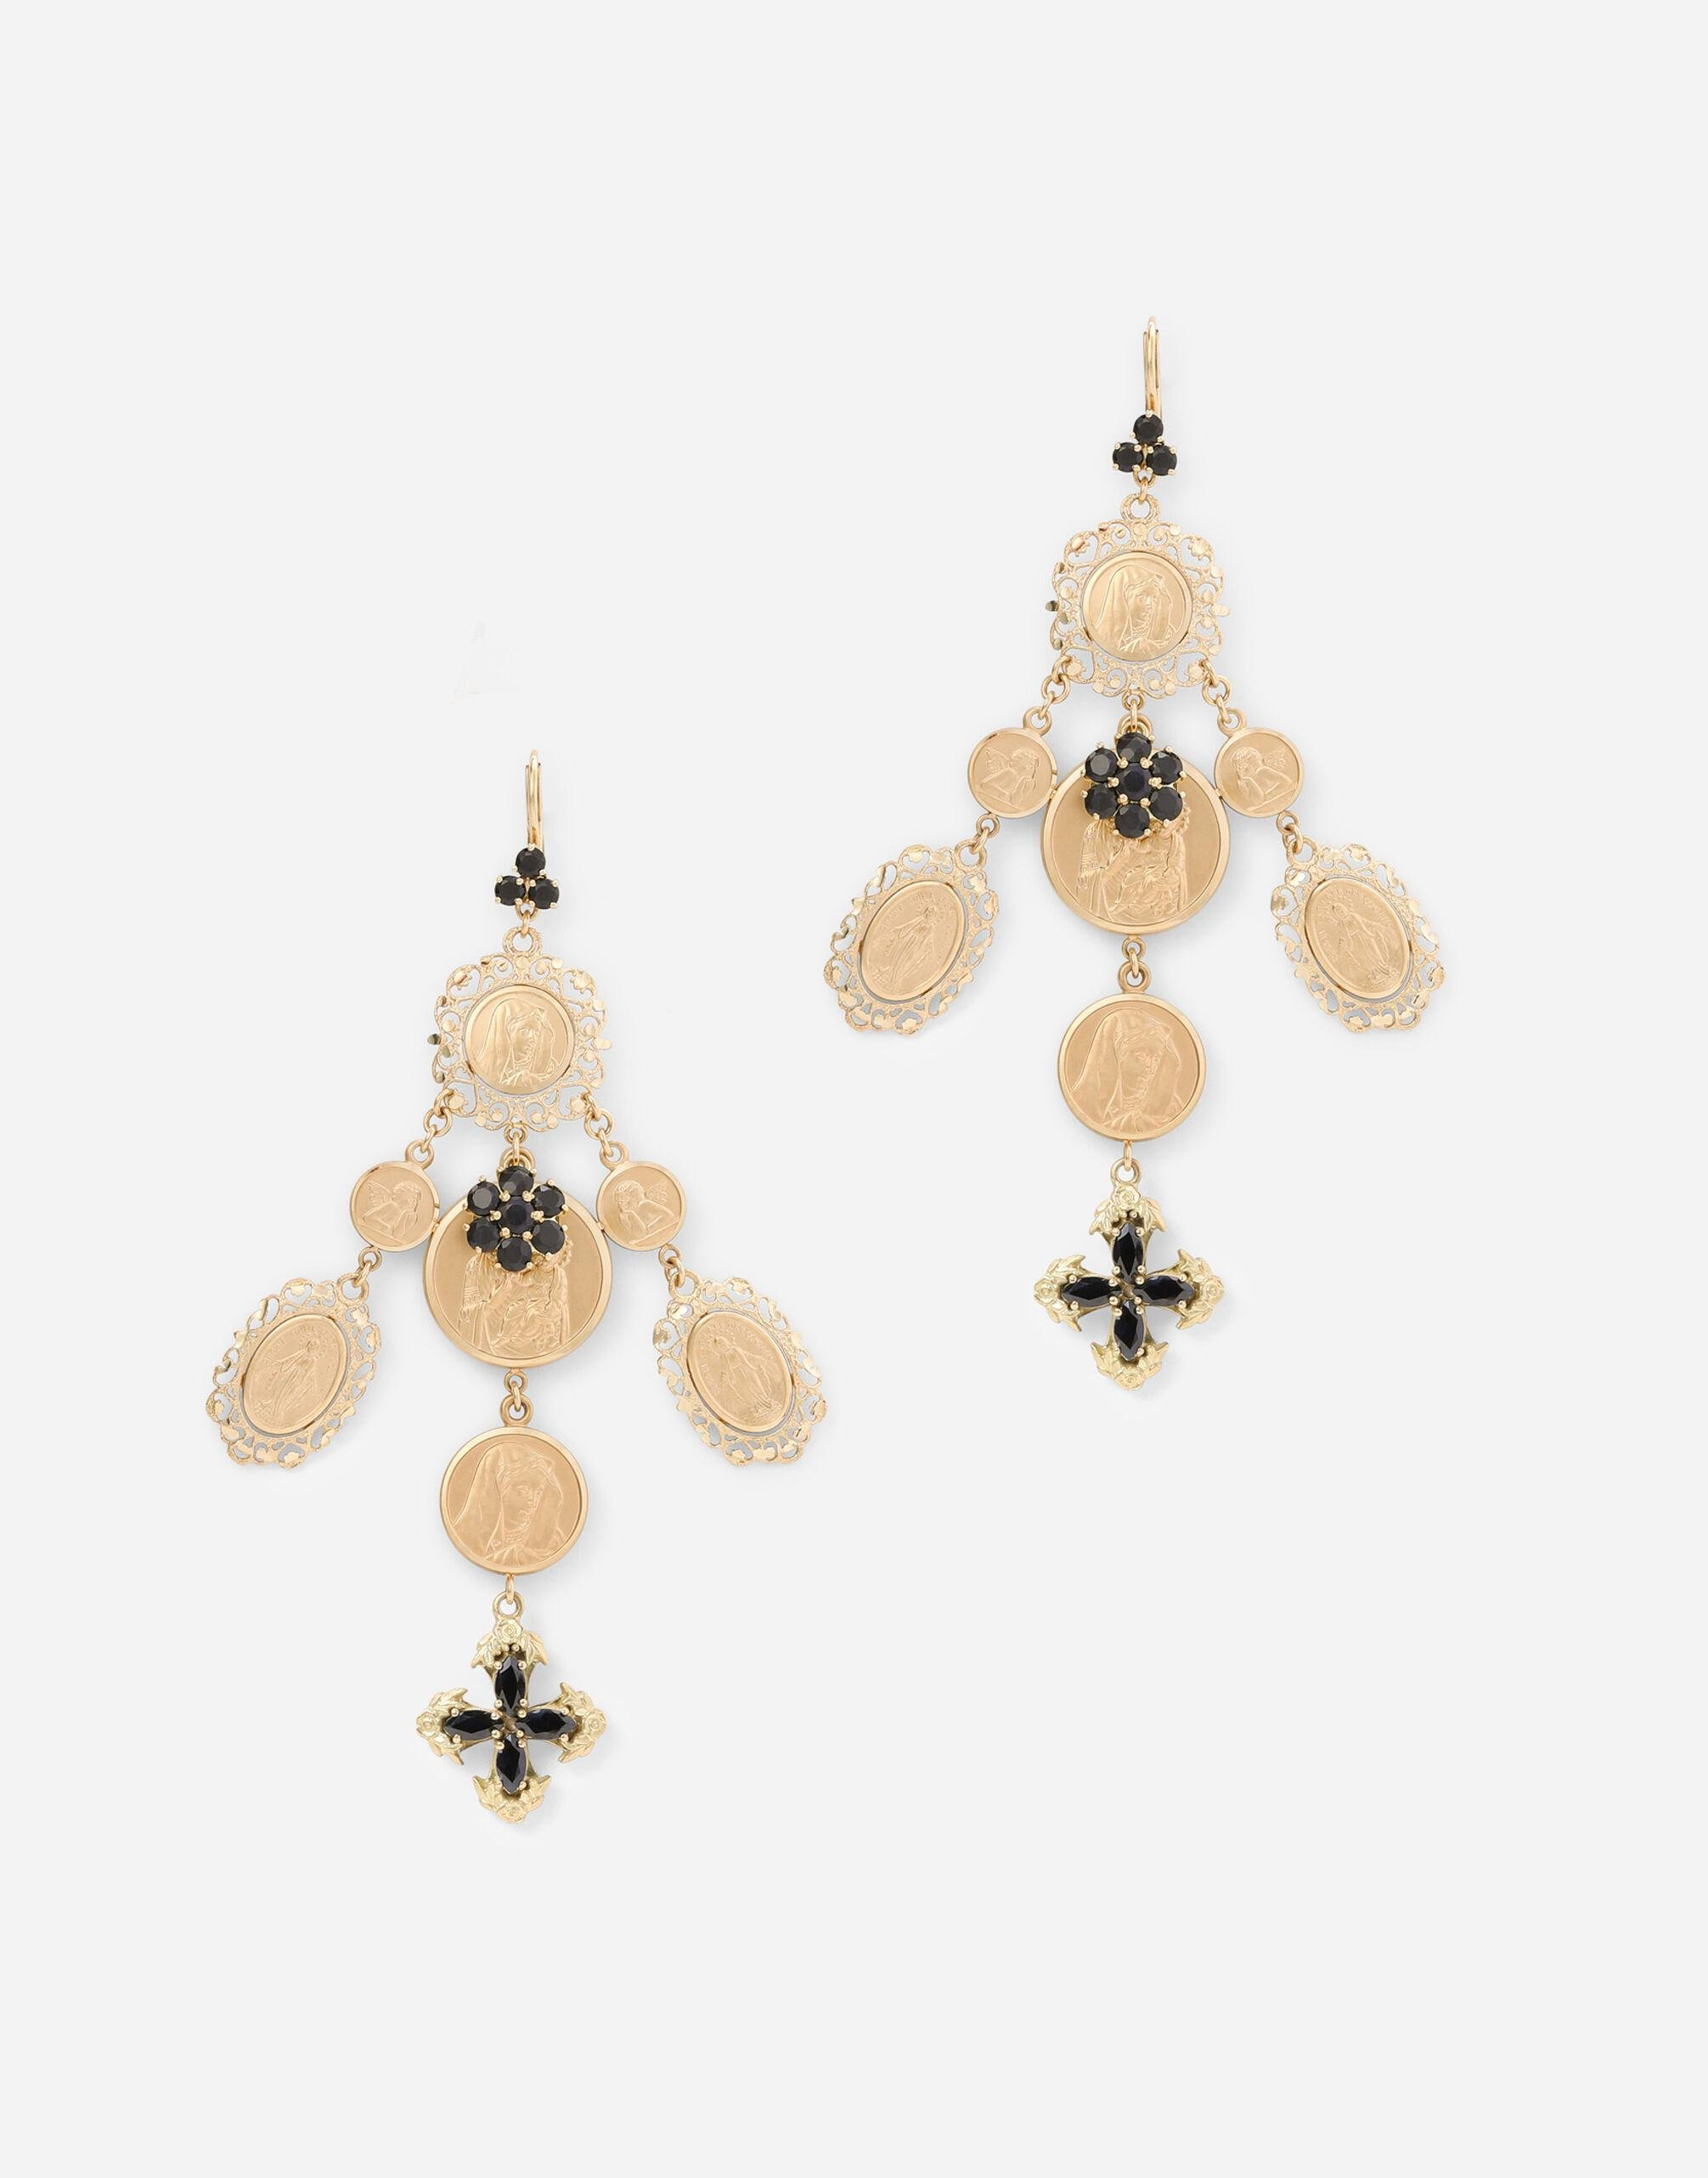 Yellow gold Sicily earrings with medals and cross pendants